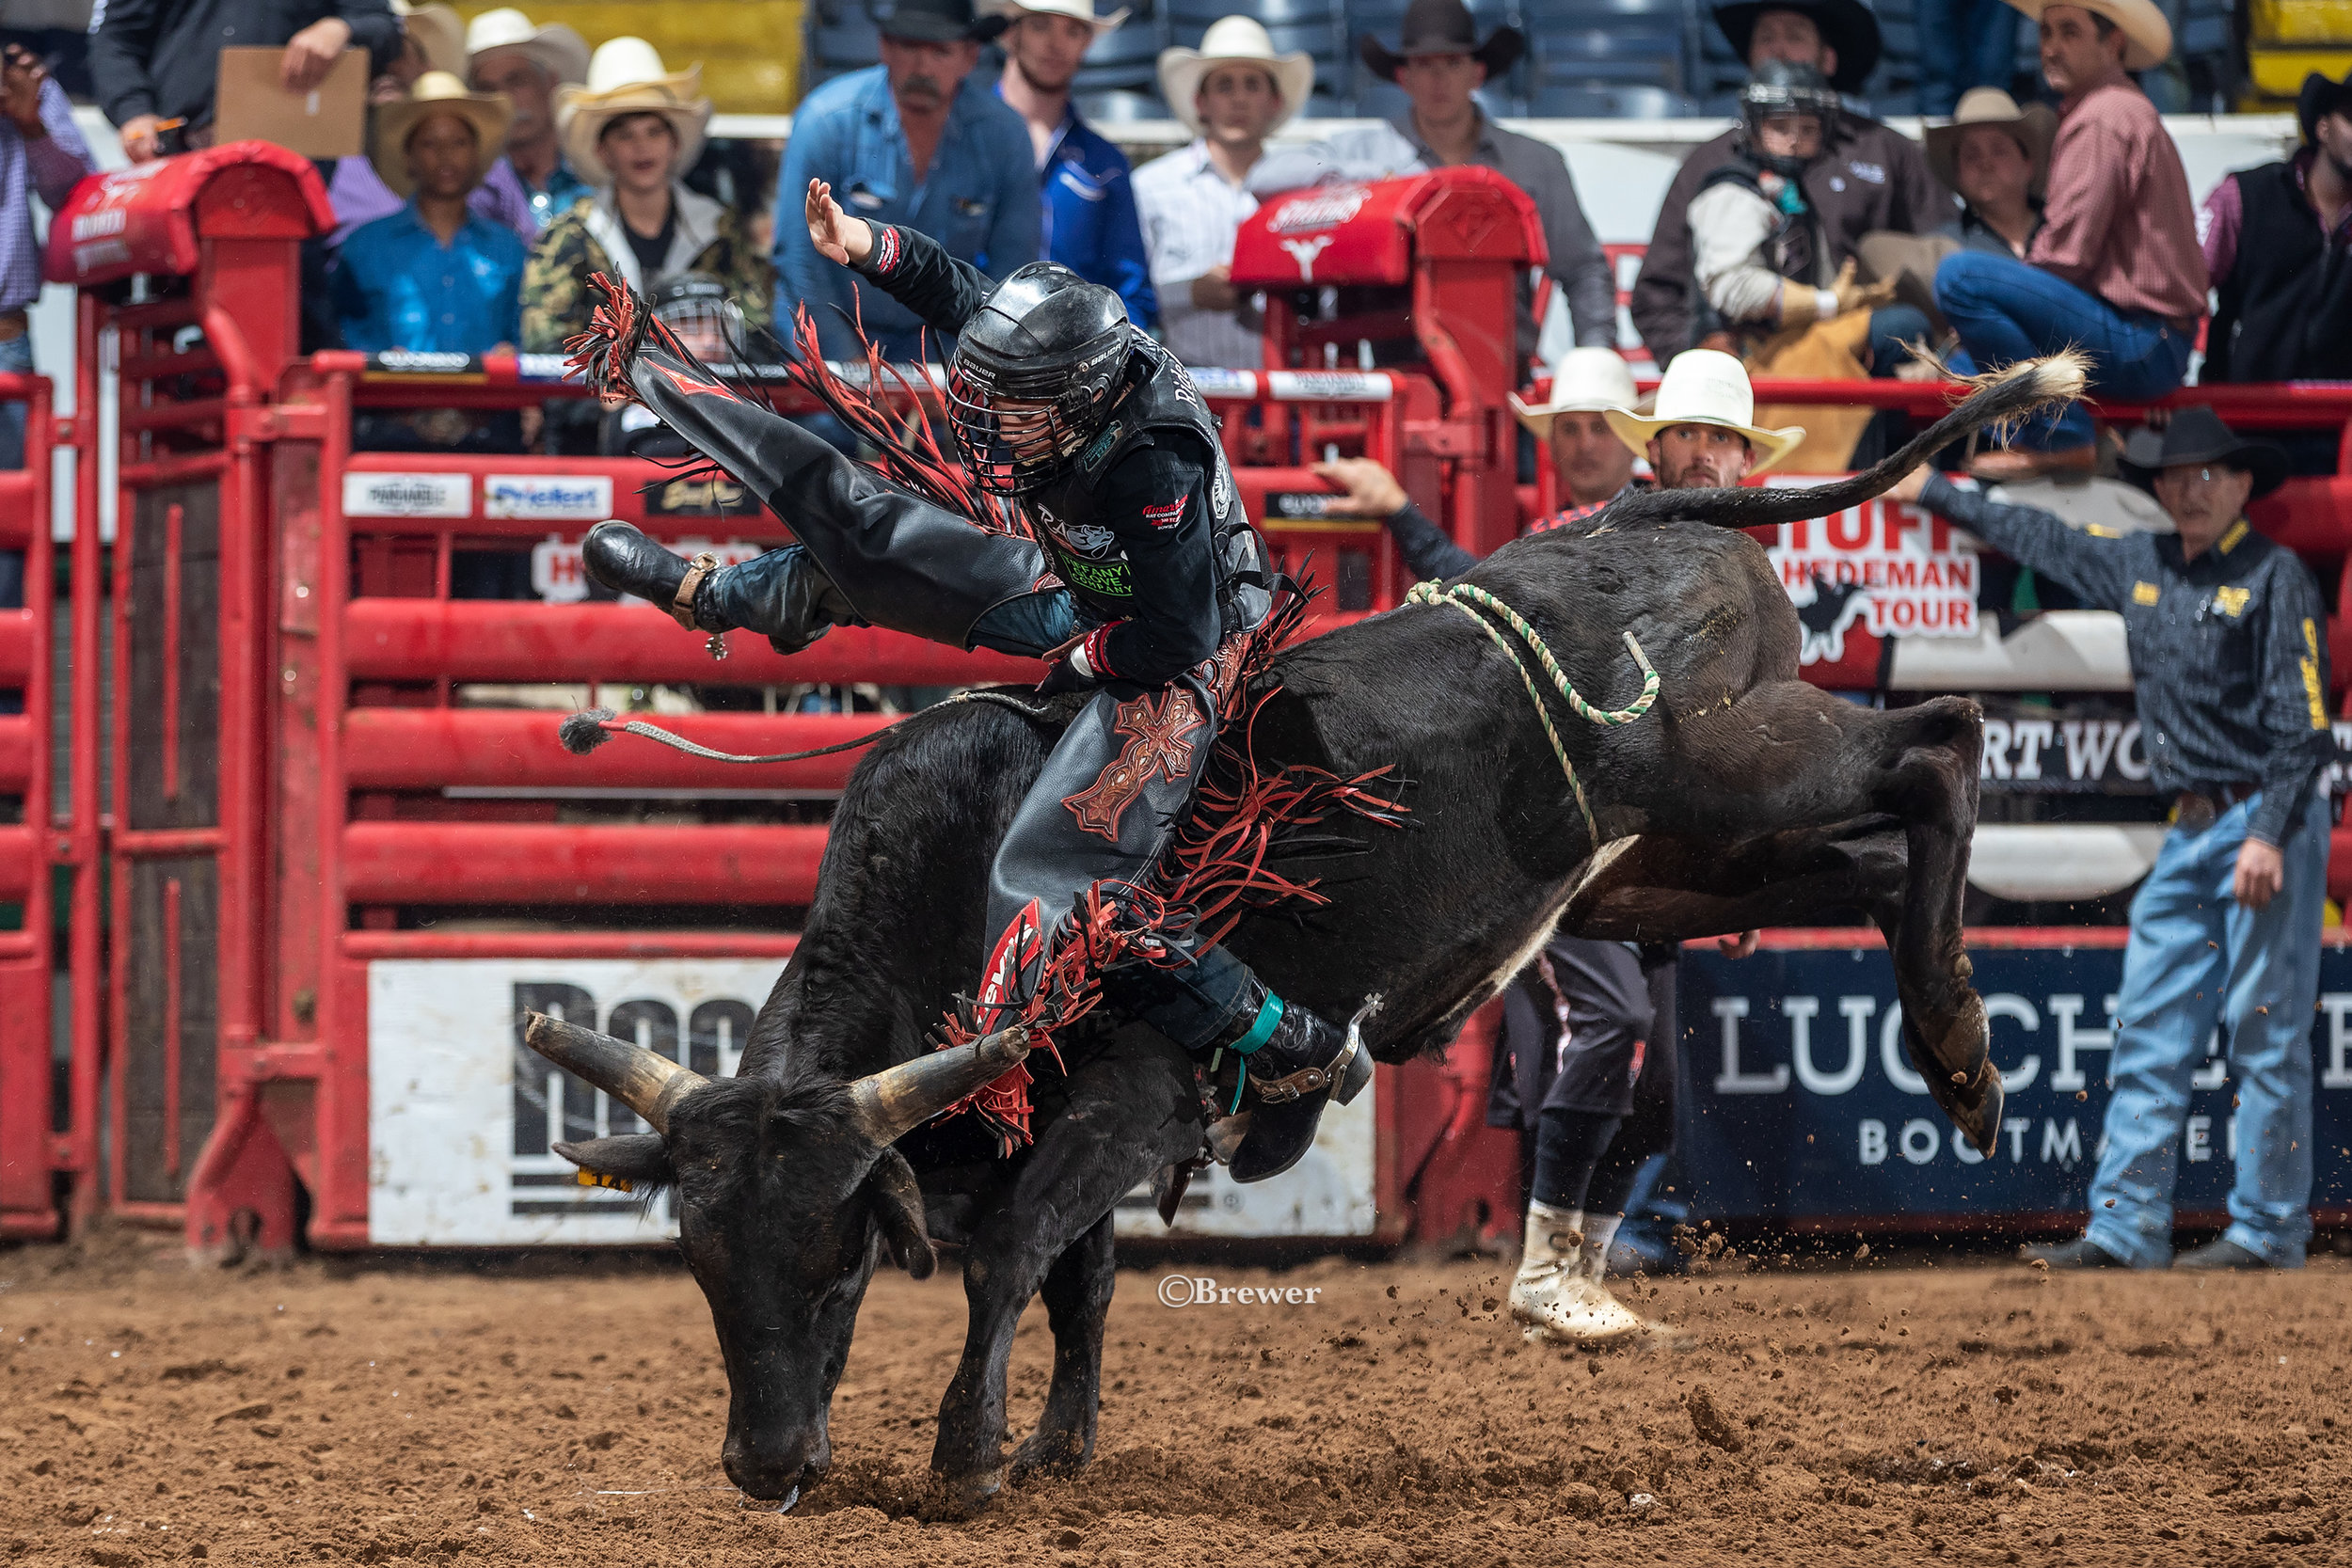 Steer Rider John Crimber takes the Cripple Creek Junior title this year in Fort Worth